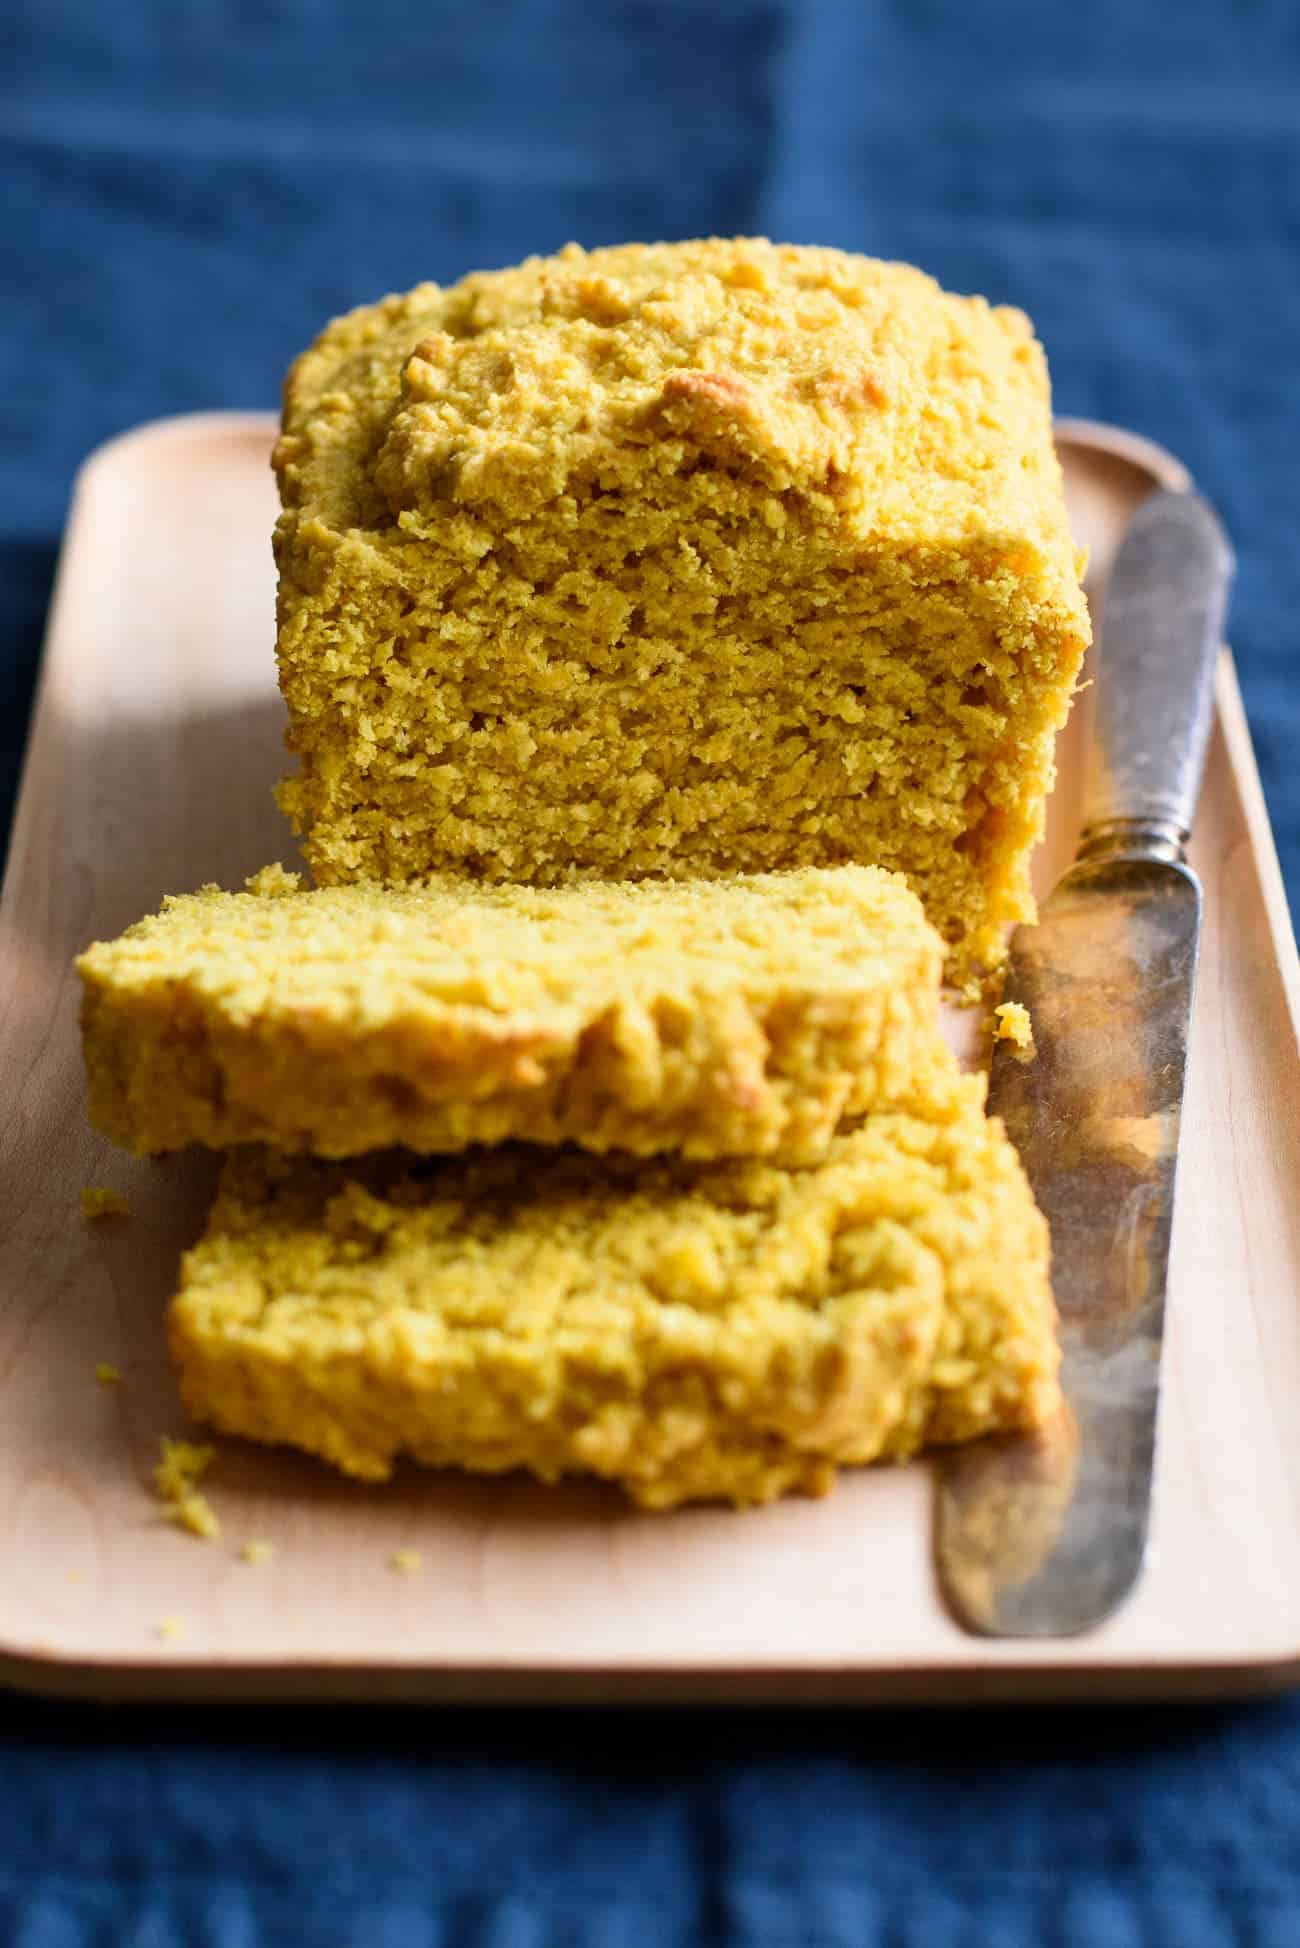 Close-up of a Turmeric Loaf Cake on a rectangular wooden plate